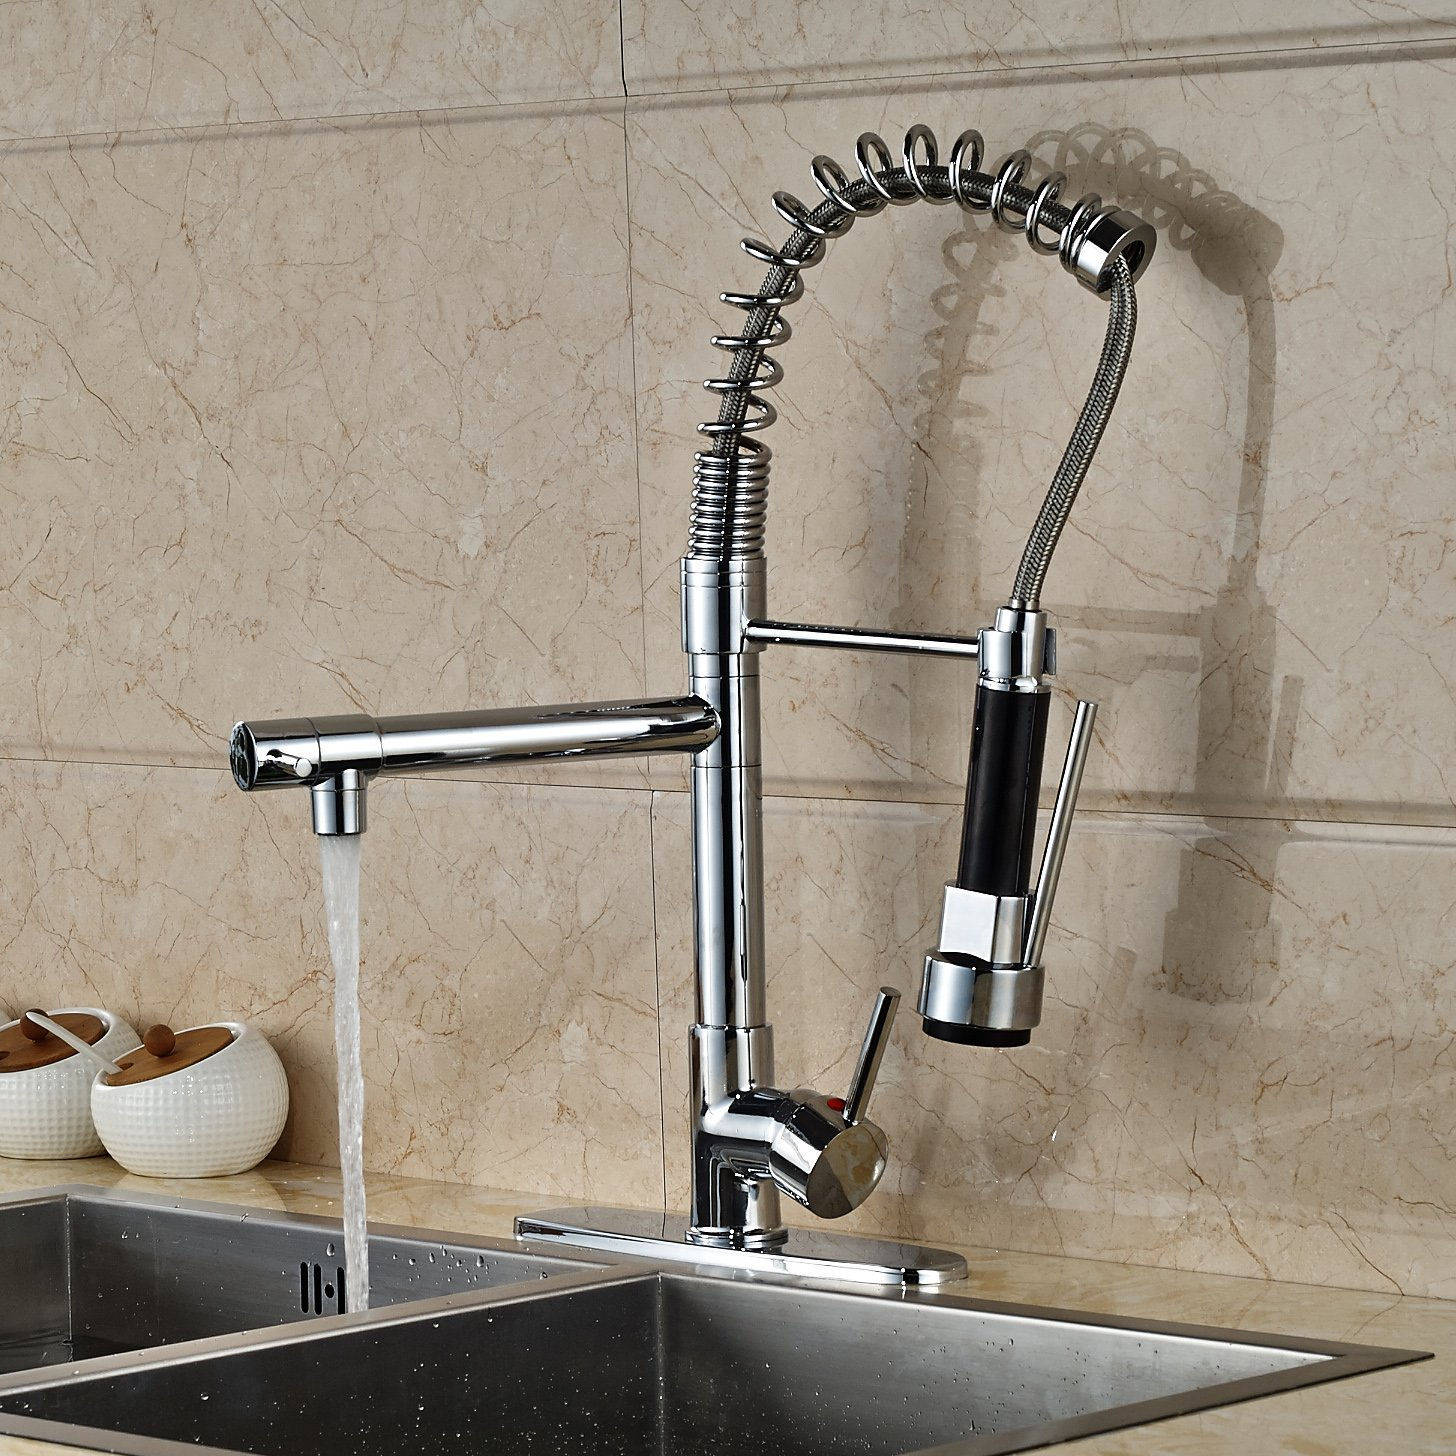 Sensor Kitchen Faucet Doubs Deck Mounted Kitchen Sink Faucet With Pull Down Spray